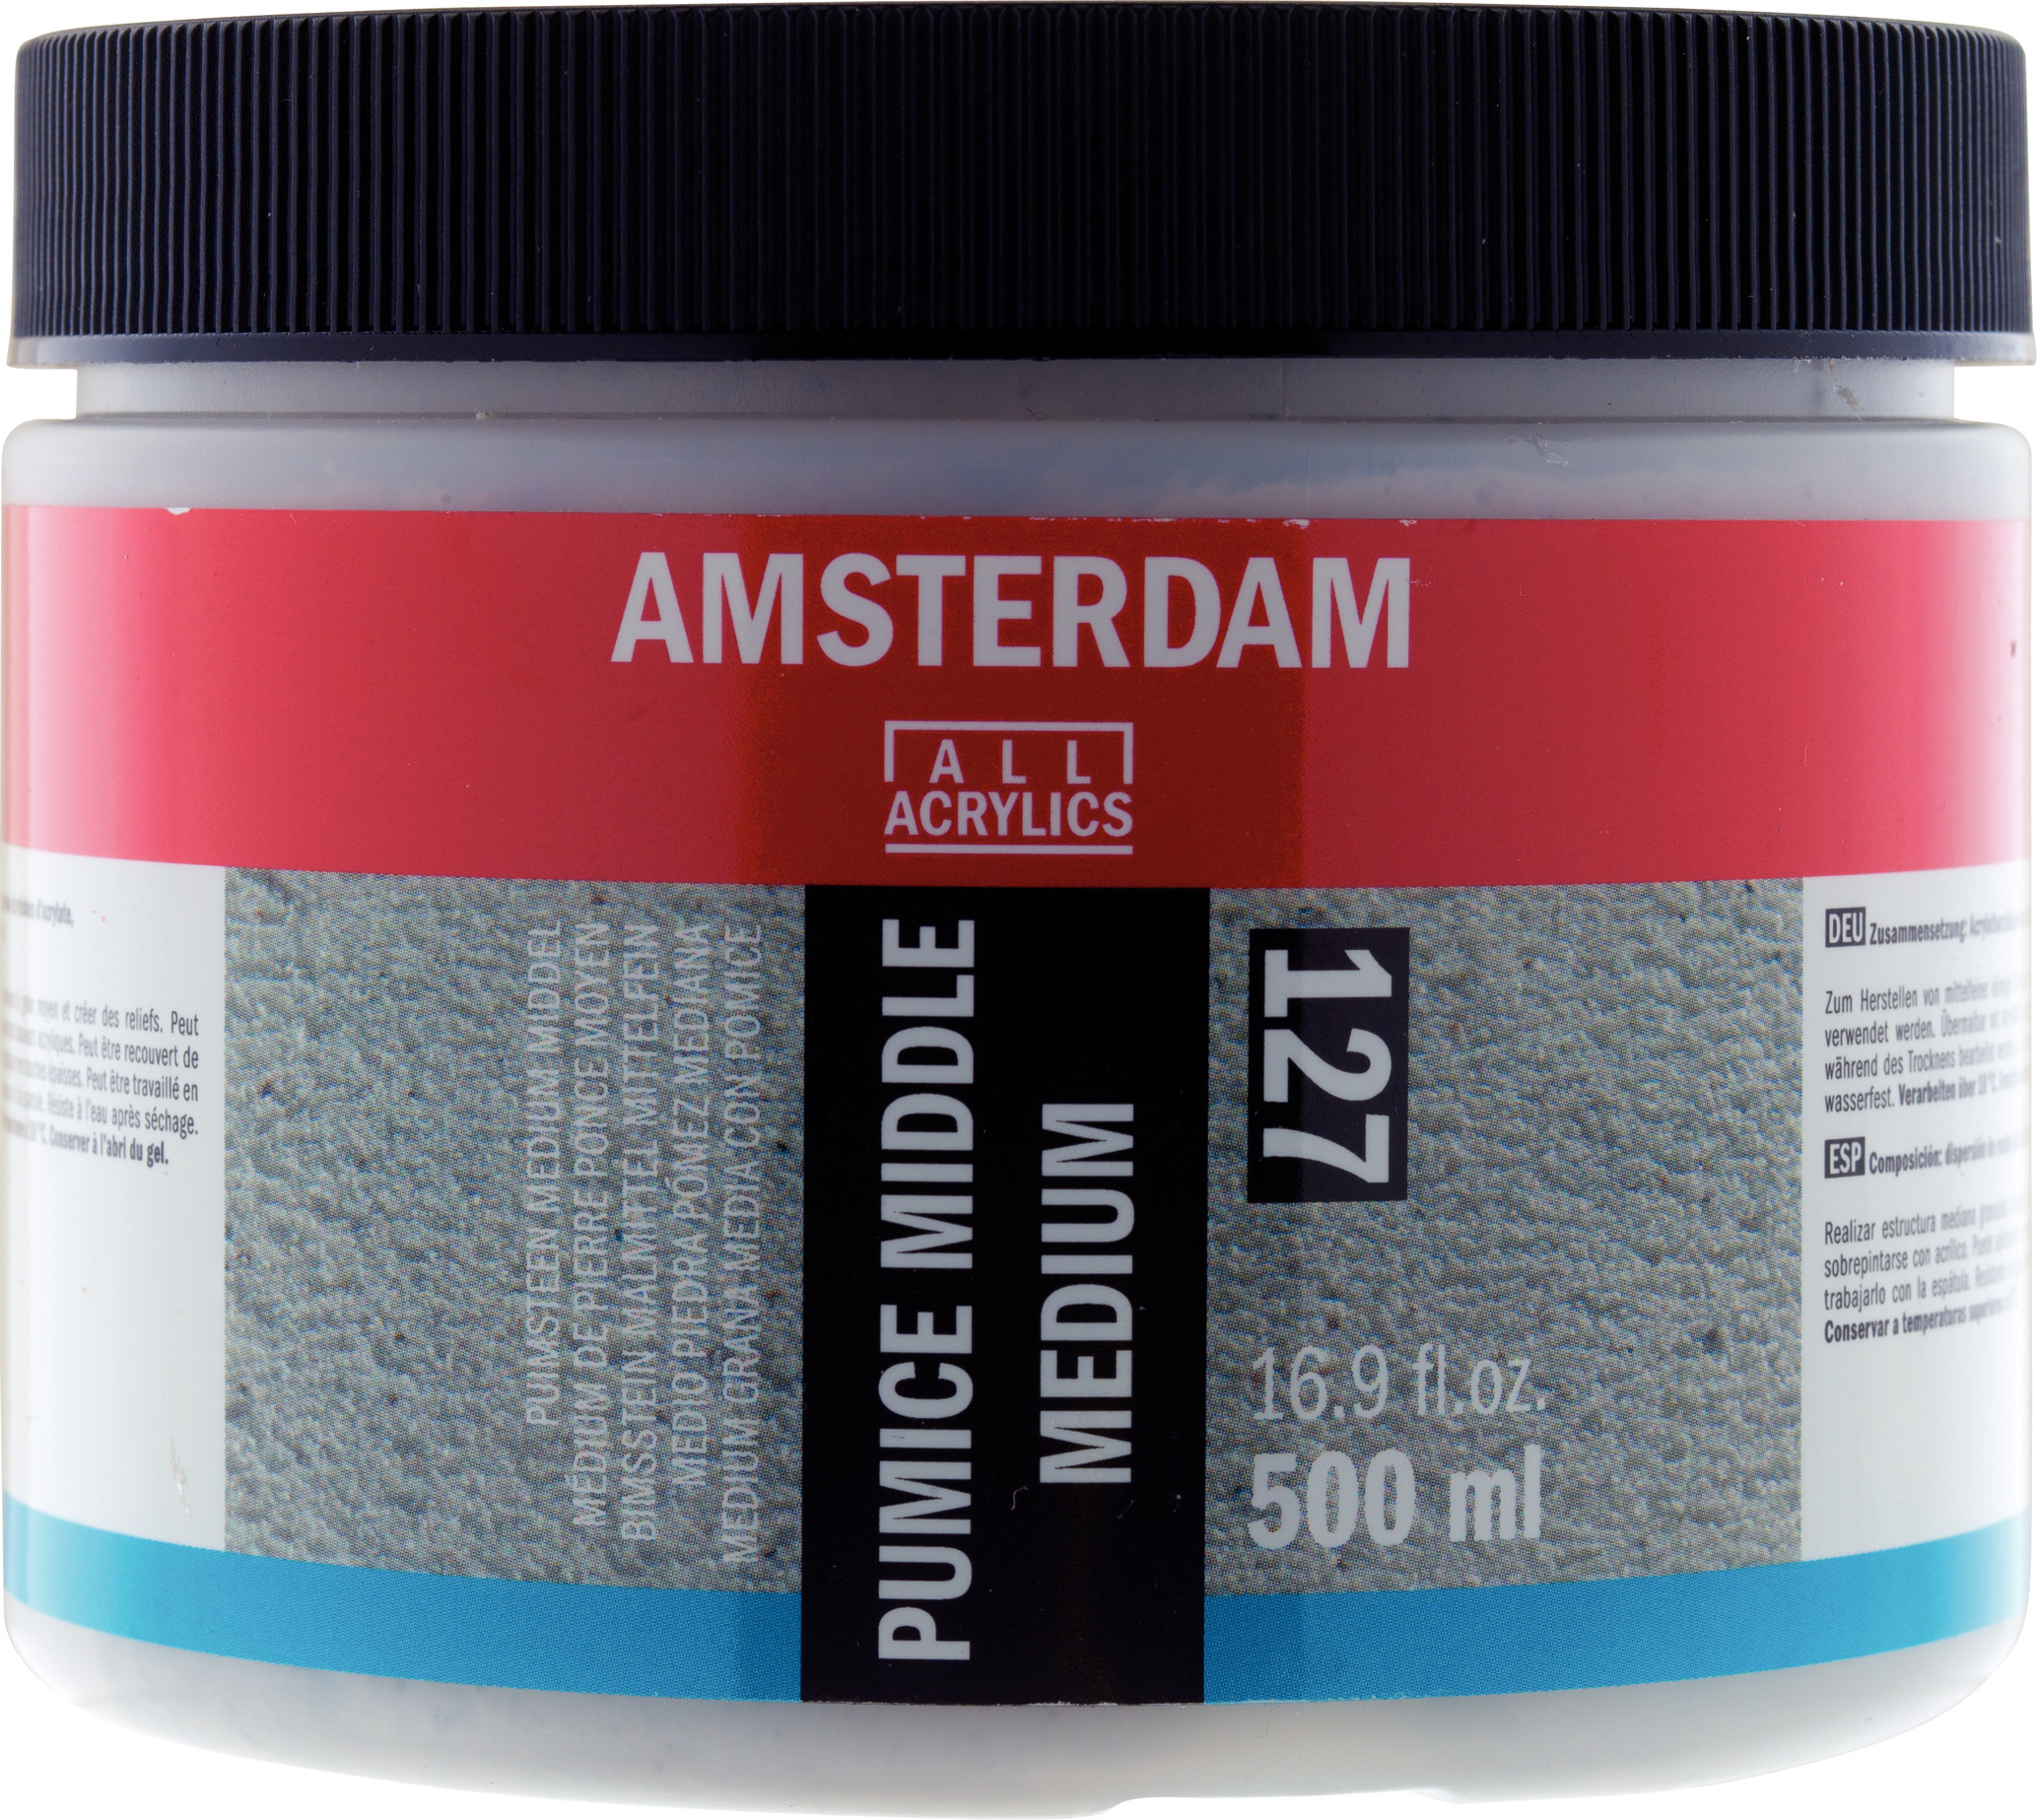 Amsterdam Pumice Middle Medium Jar 500 ml